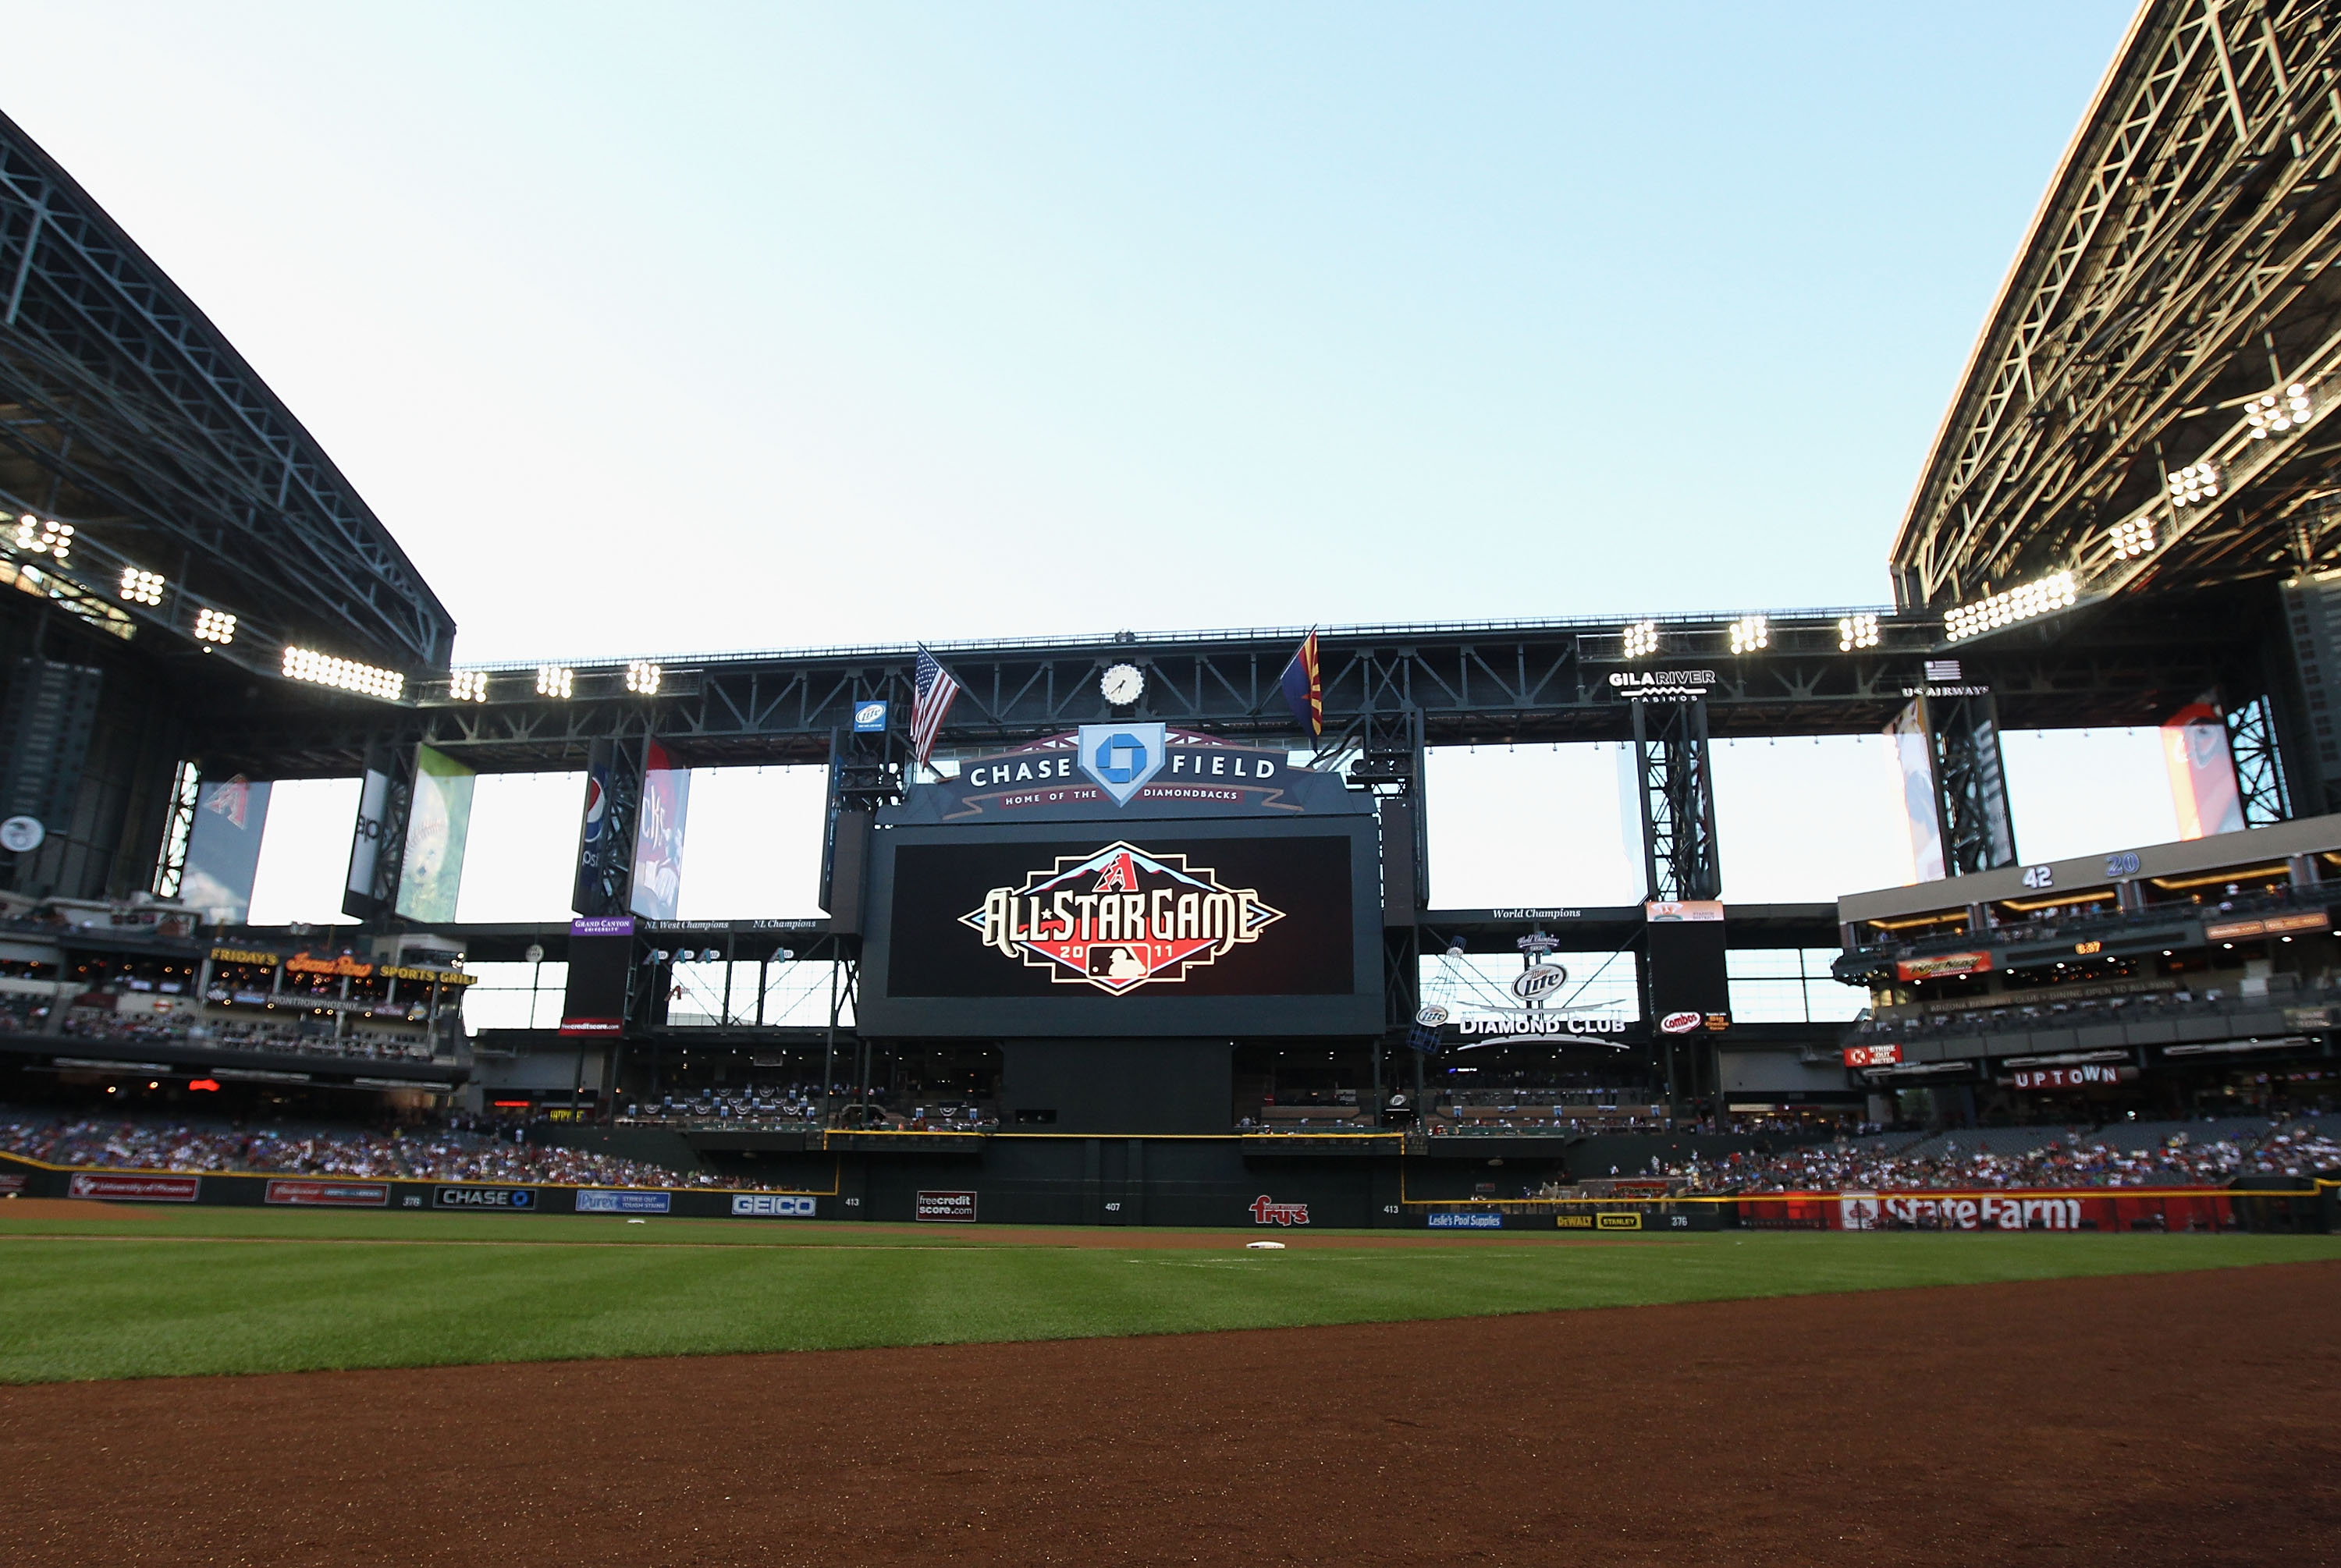 Chase Field in Arizona, the host of the 2011 MLB All-Star Game